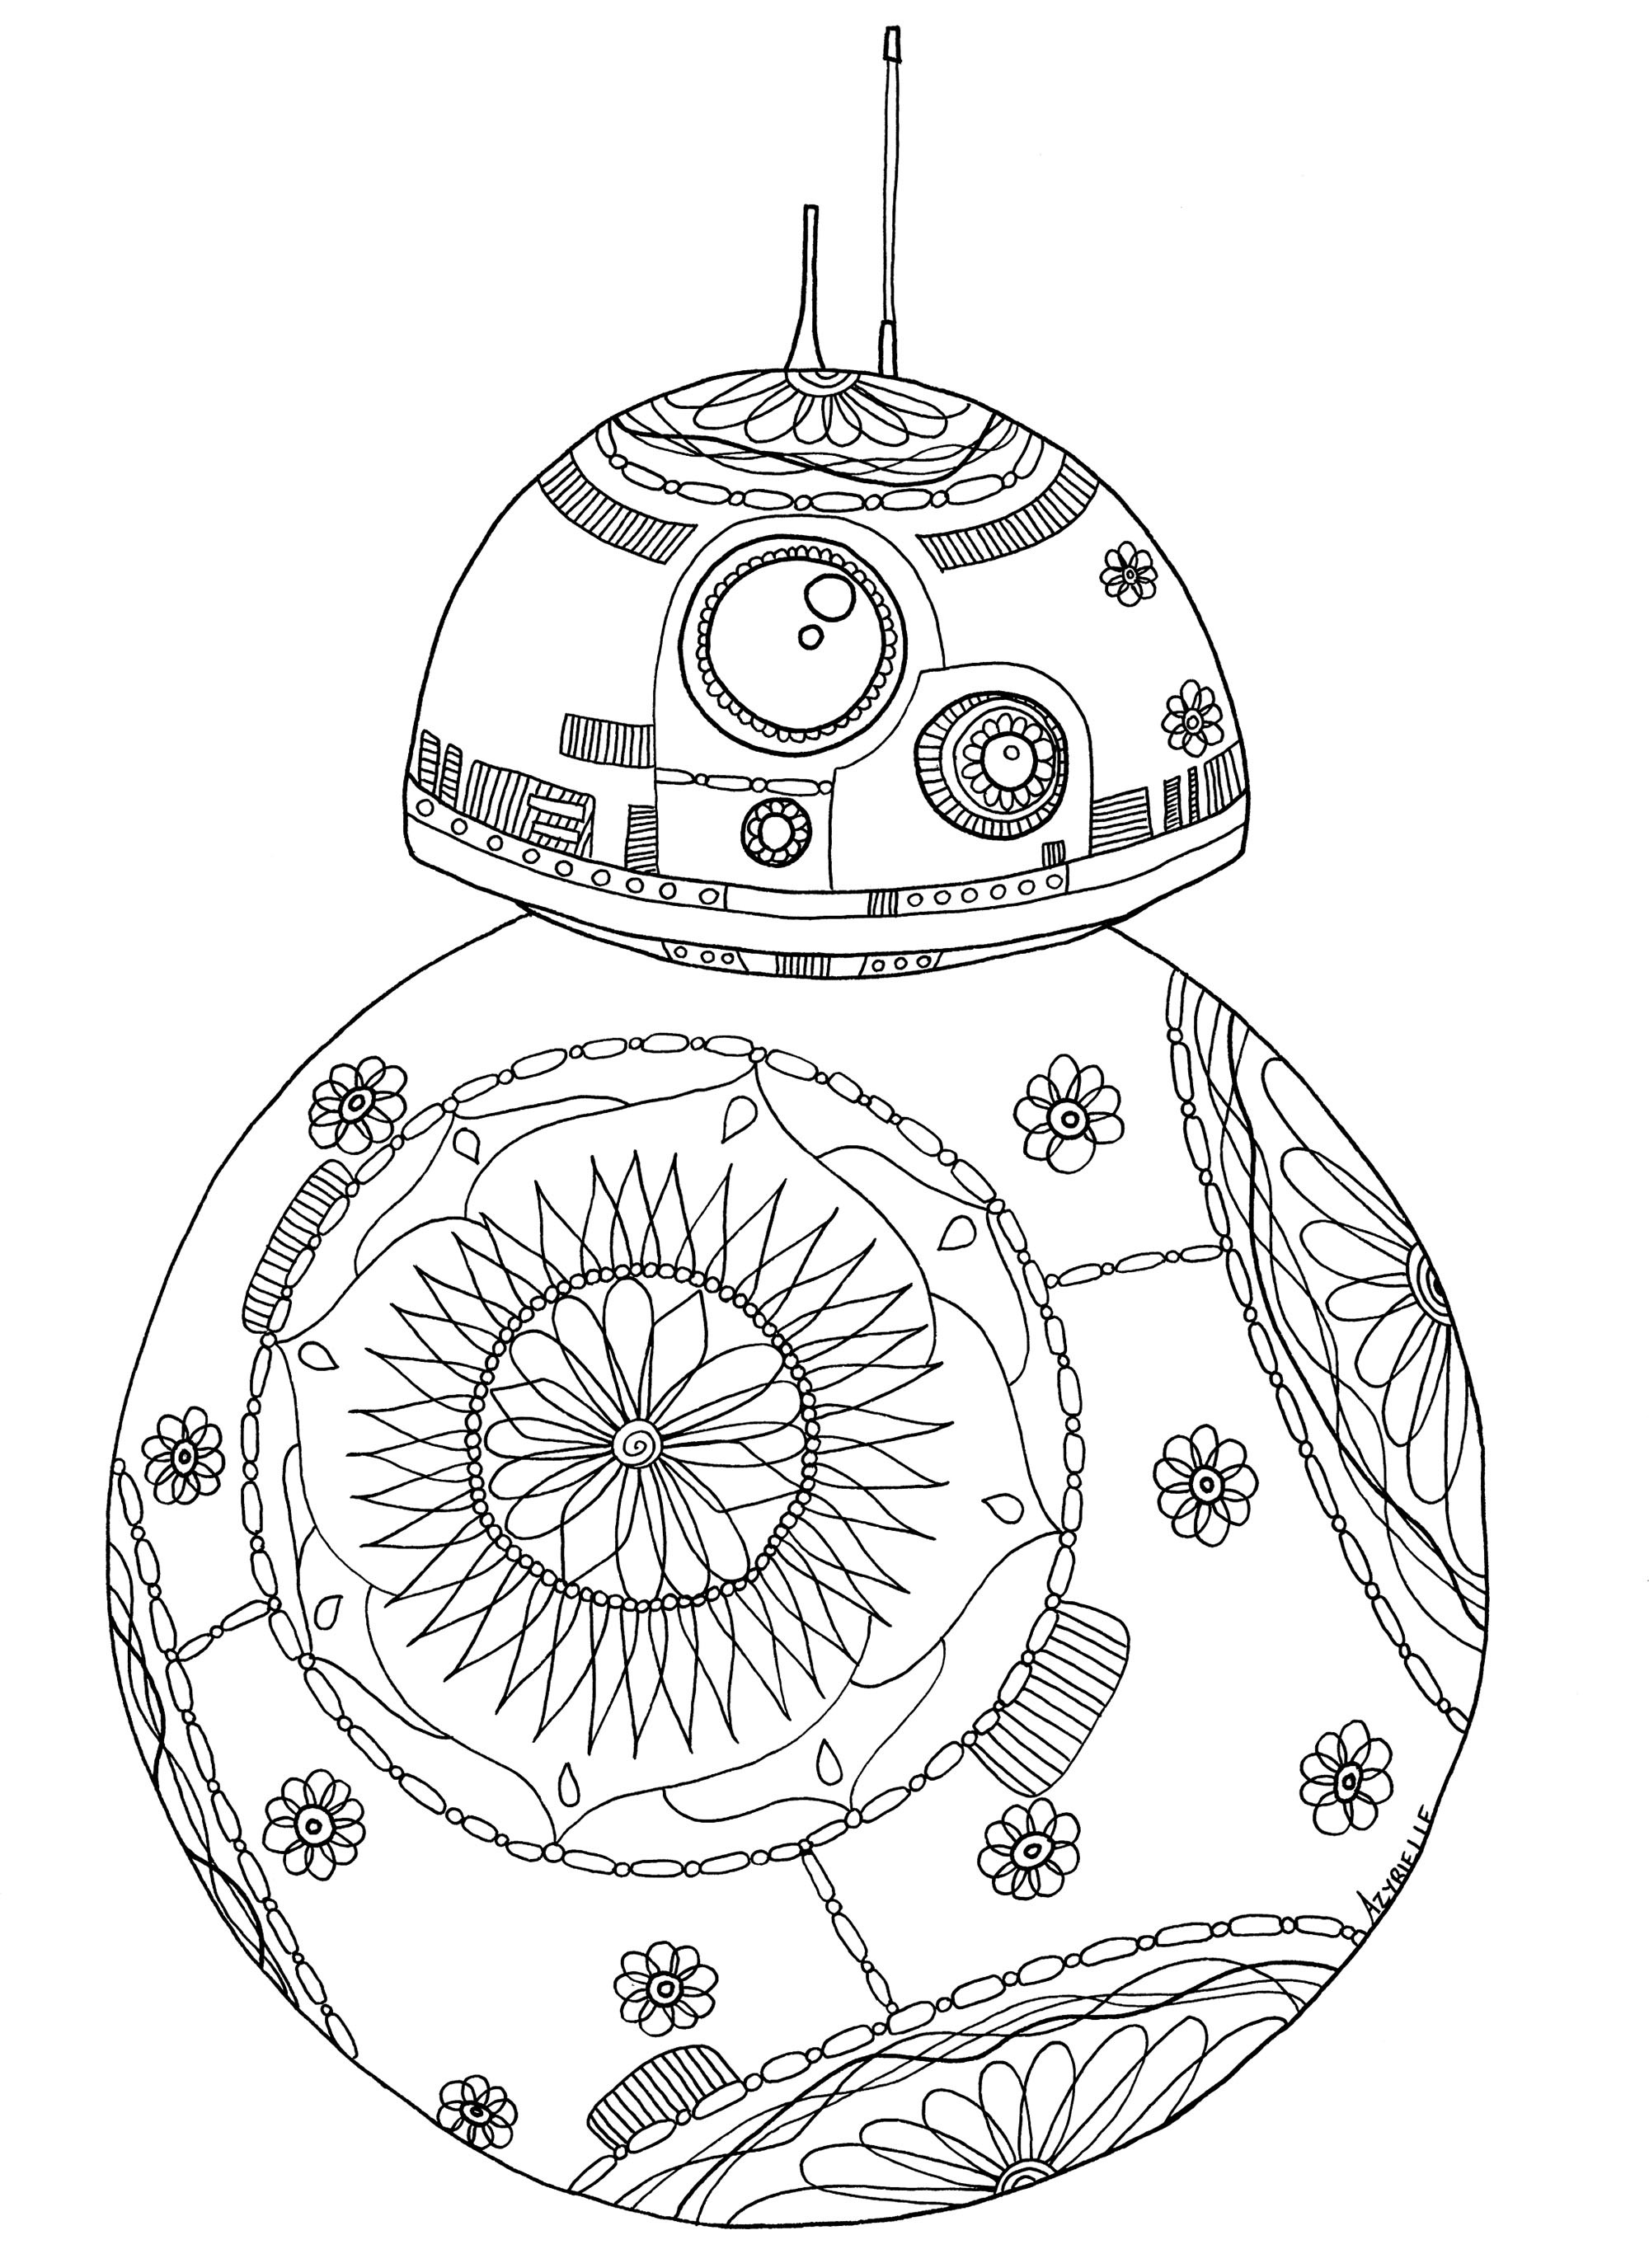 star wars colouring for kids star wars to download star wars kids coloring pages wars colouring for star kids